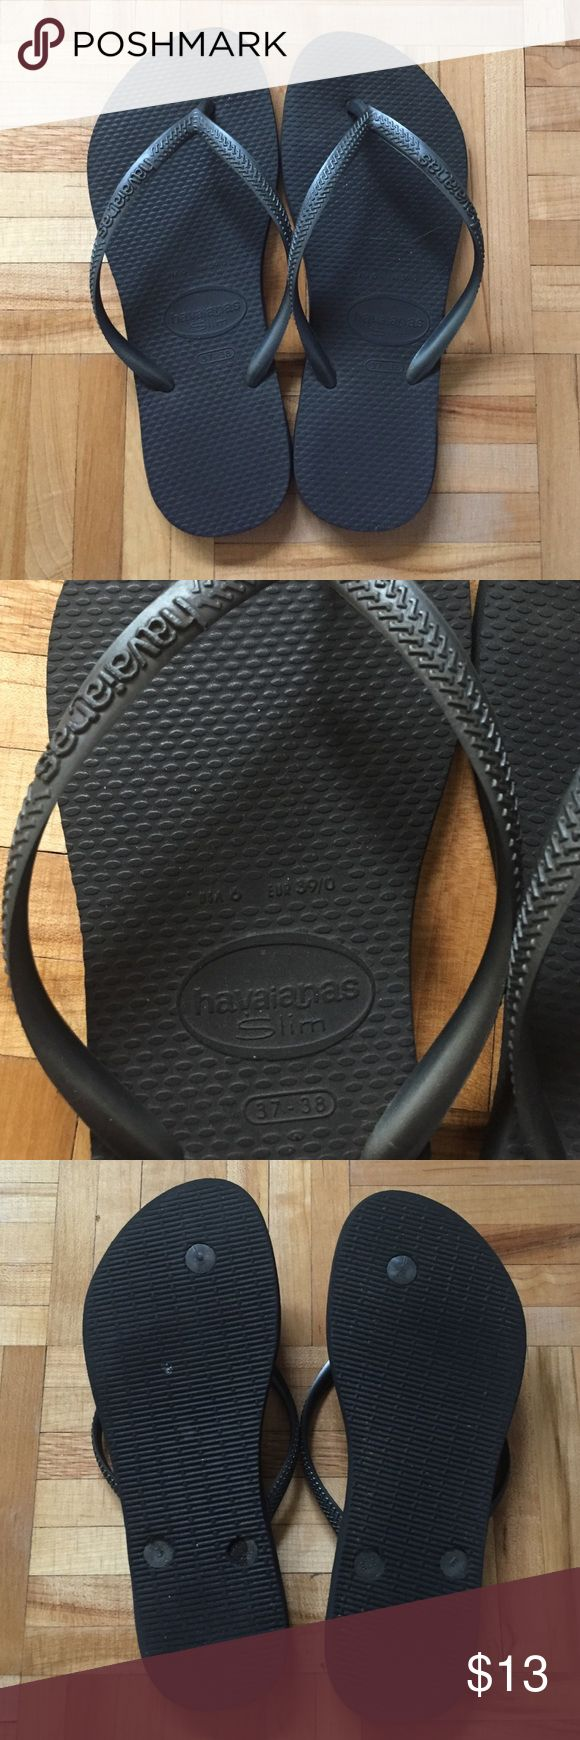 Havaianas Slim Flip Flops Metallic Graphite Thong-style construction with rounded toe post. Rubber upper with metal logo tag at strap. Man-made lining. Lightly cushioned man-made footbed. Textured man-made sole. Havaianas Shoes Slippers